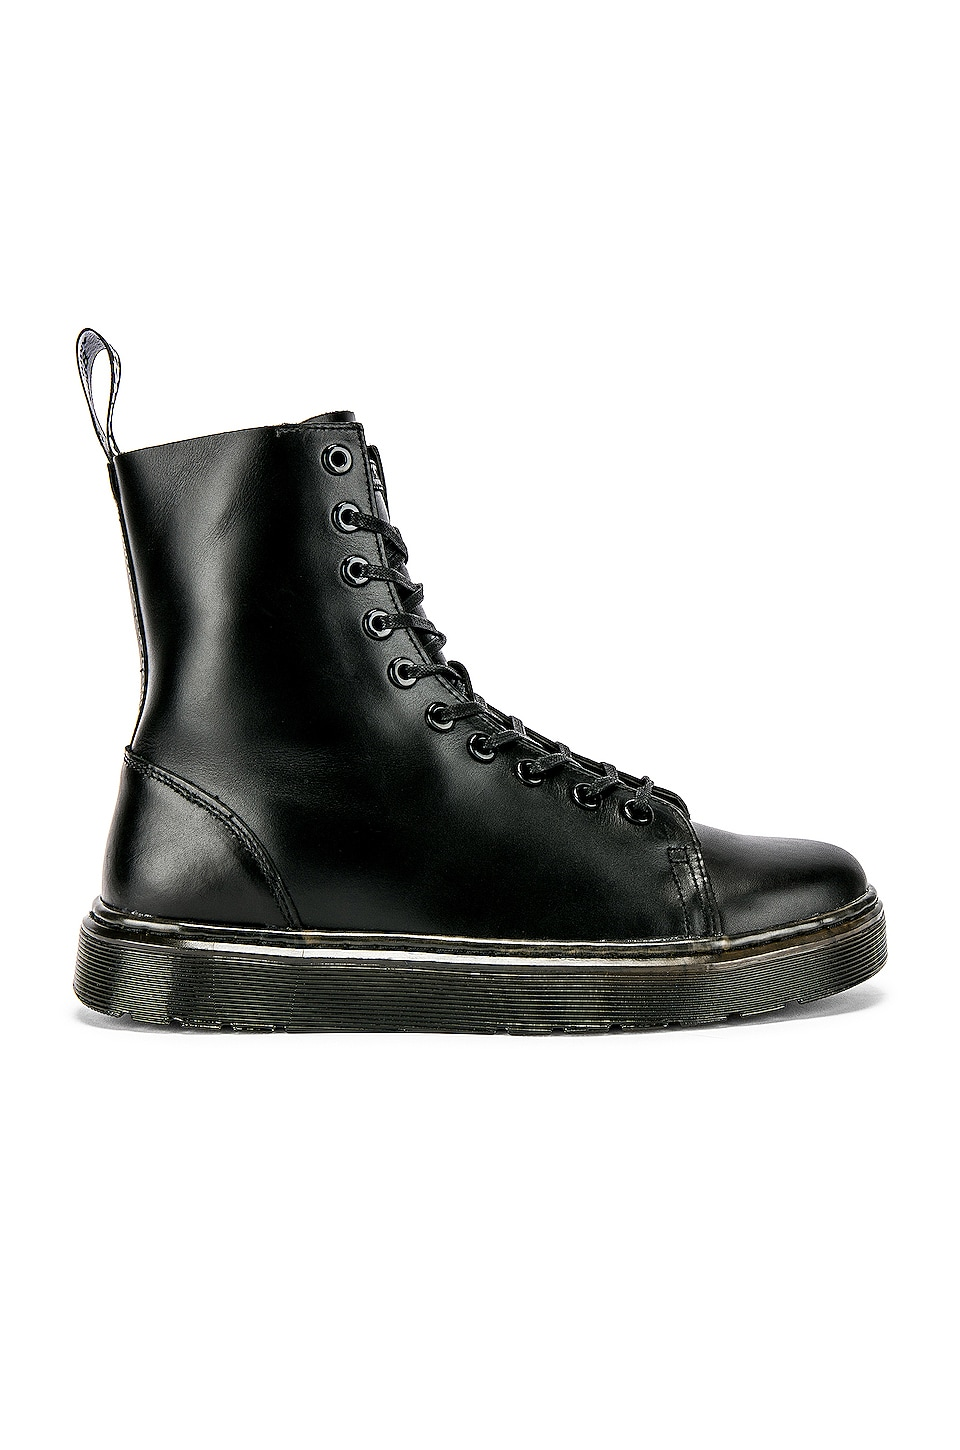 Dr. Martens Zaniel Boot in Black